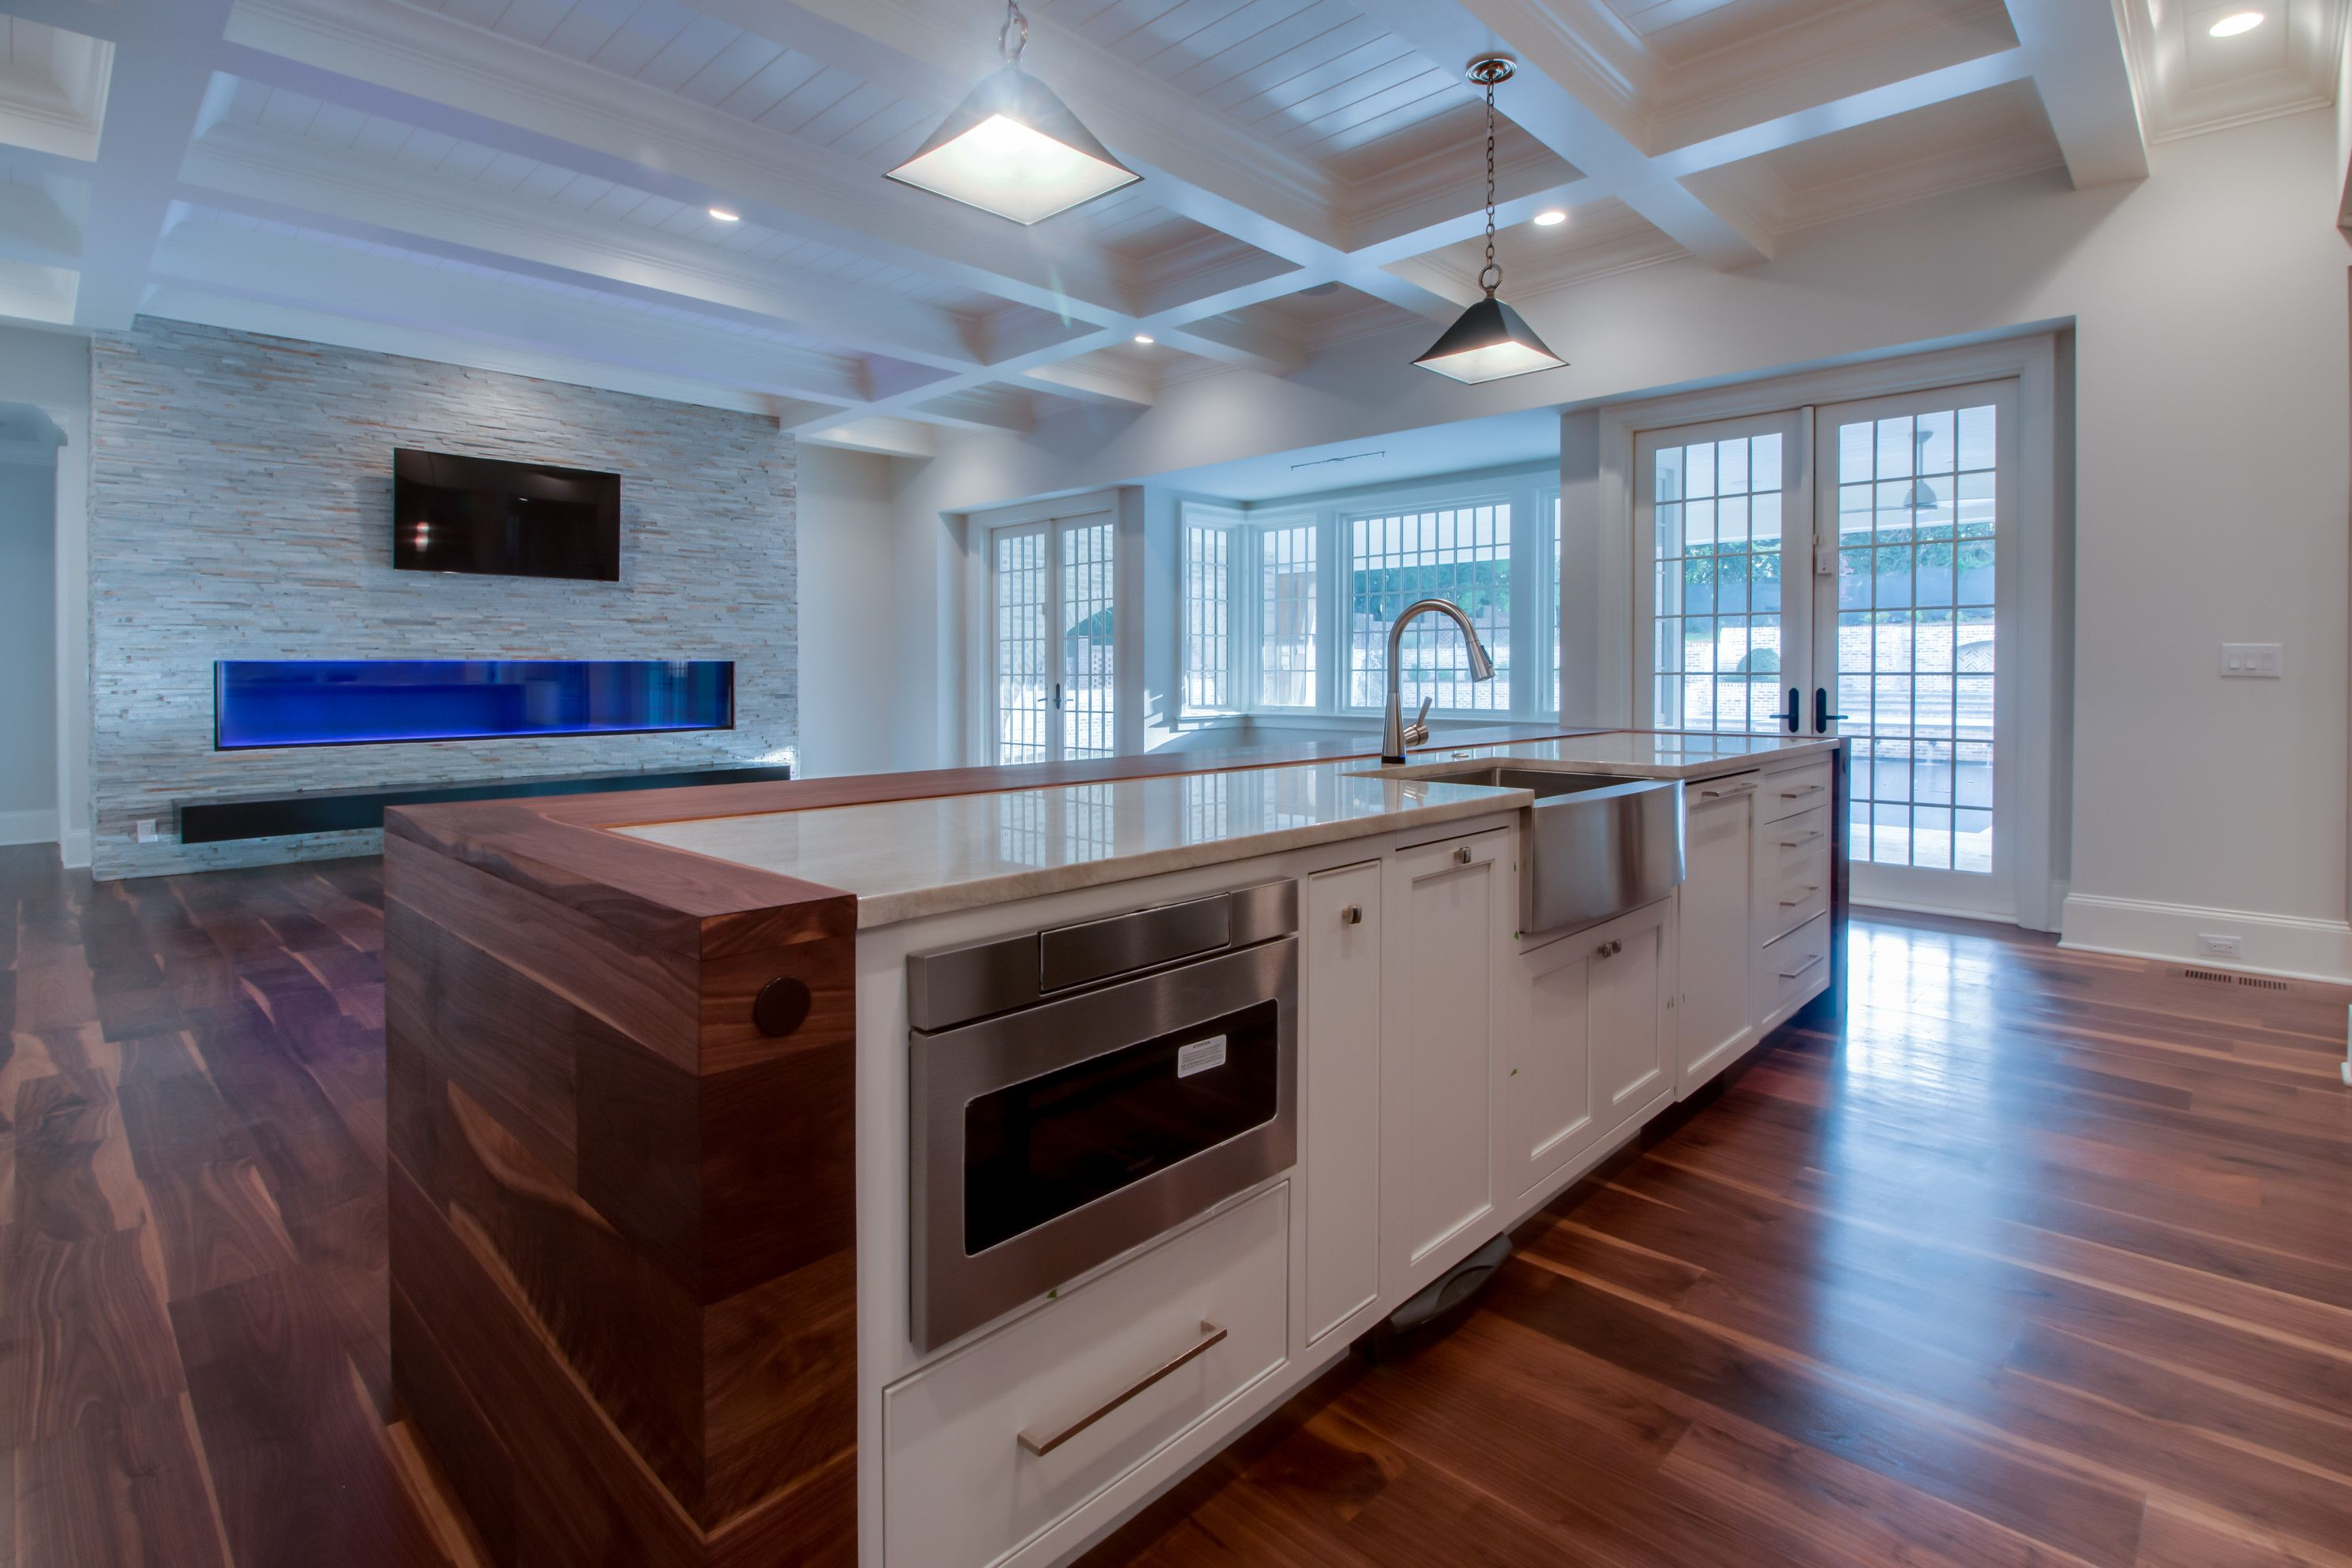 Kitchen and Family Room | FOXCROFT POST MODERN ENGLISH COMPOSITION ...